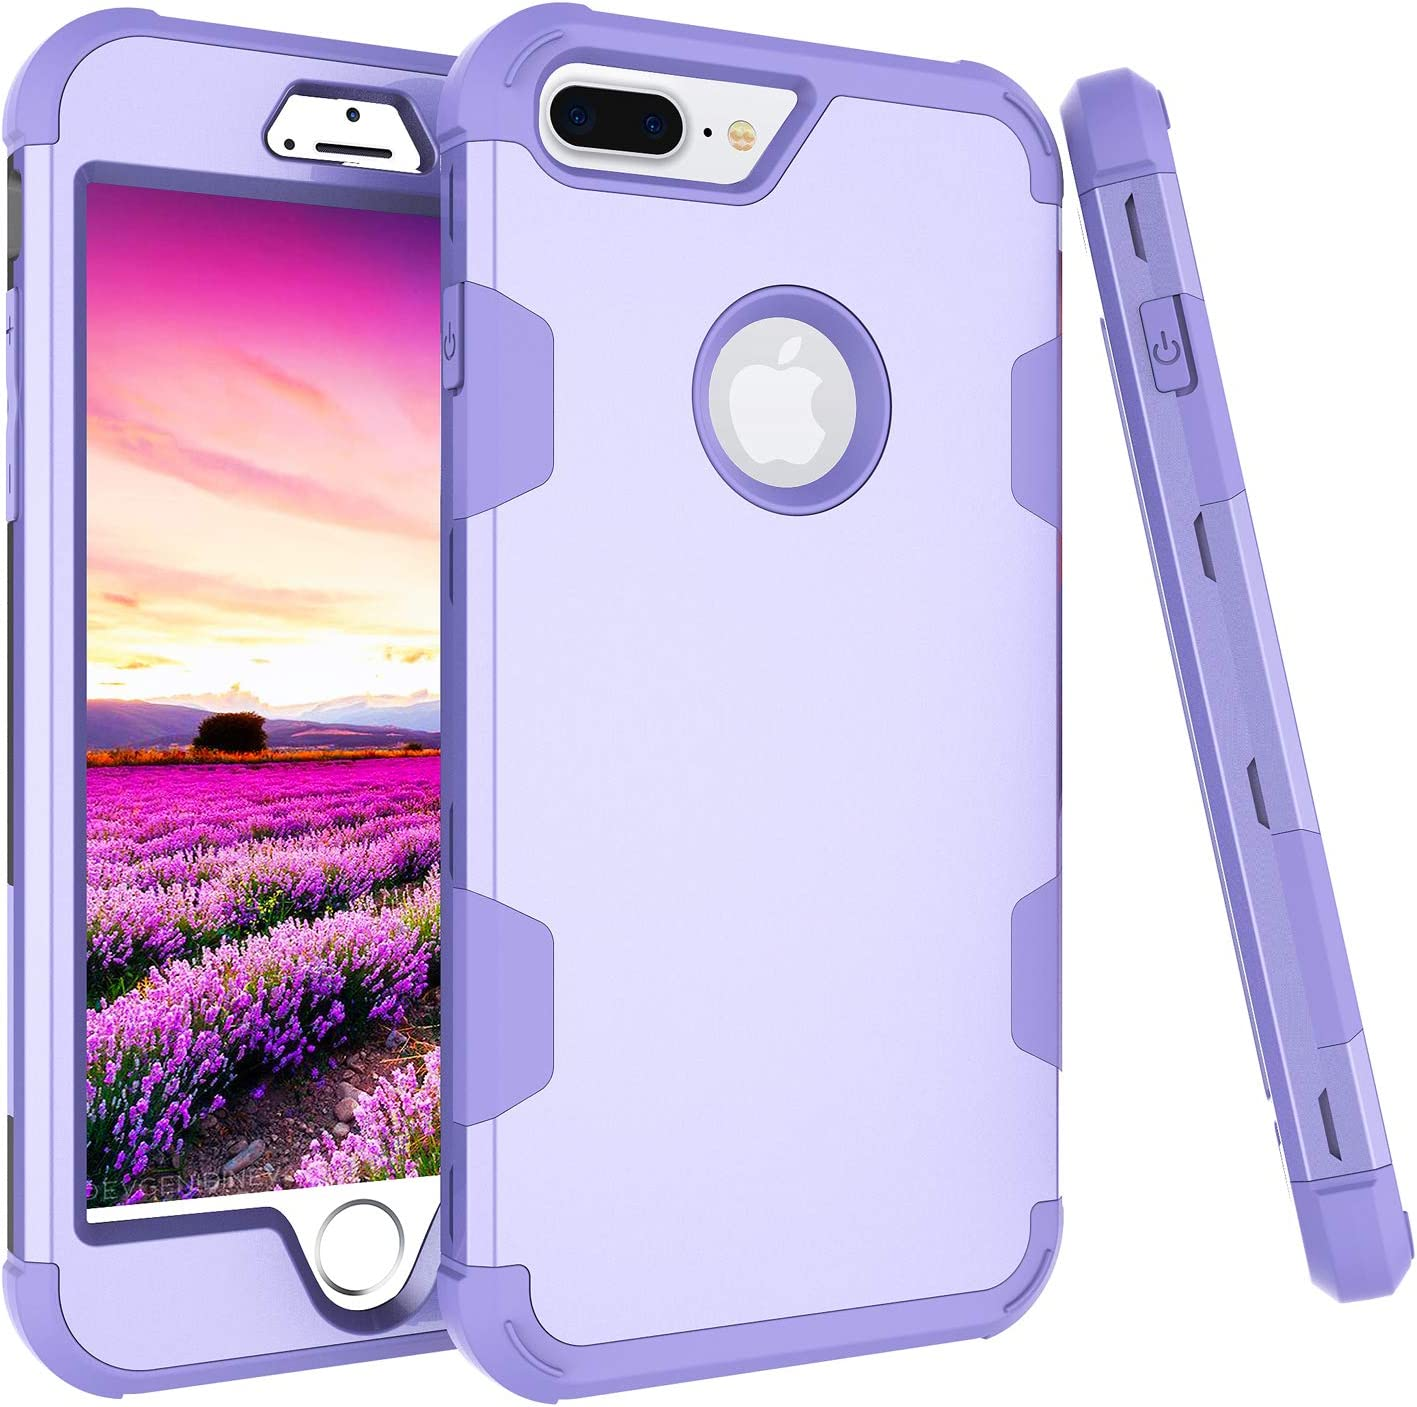 Asuwish Compatible with iPhone 7plus 8plus 7/8 Plus Case Slim Hybrid Shockproof Silicone Heavy Duty Hard Cell Accessories Phone Cases for i Phone7s 7s + 7+ 8s 8+ iphone7pluscases iphone8splus Purple